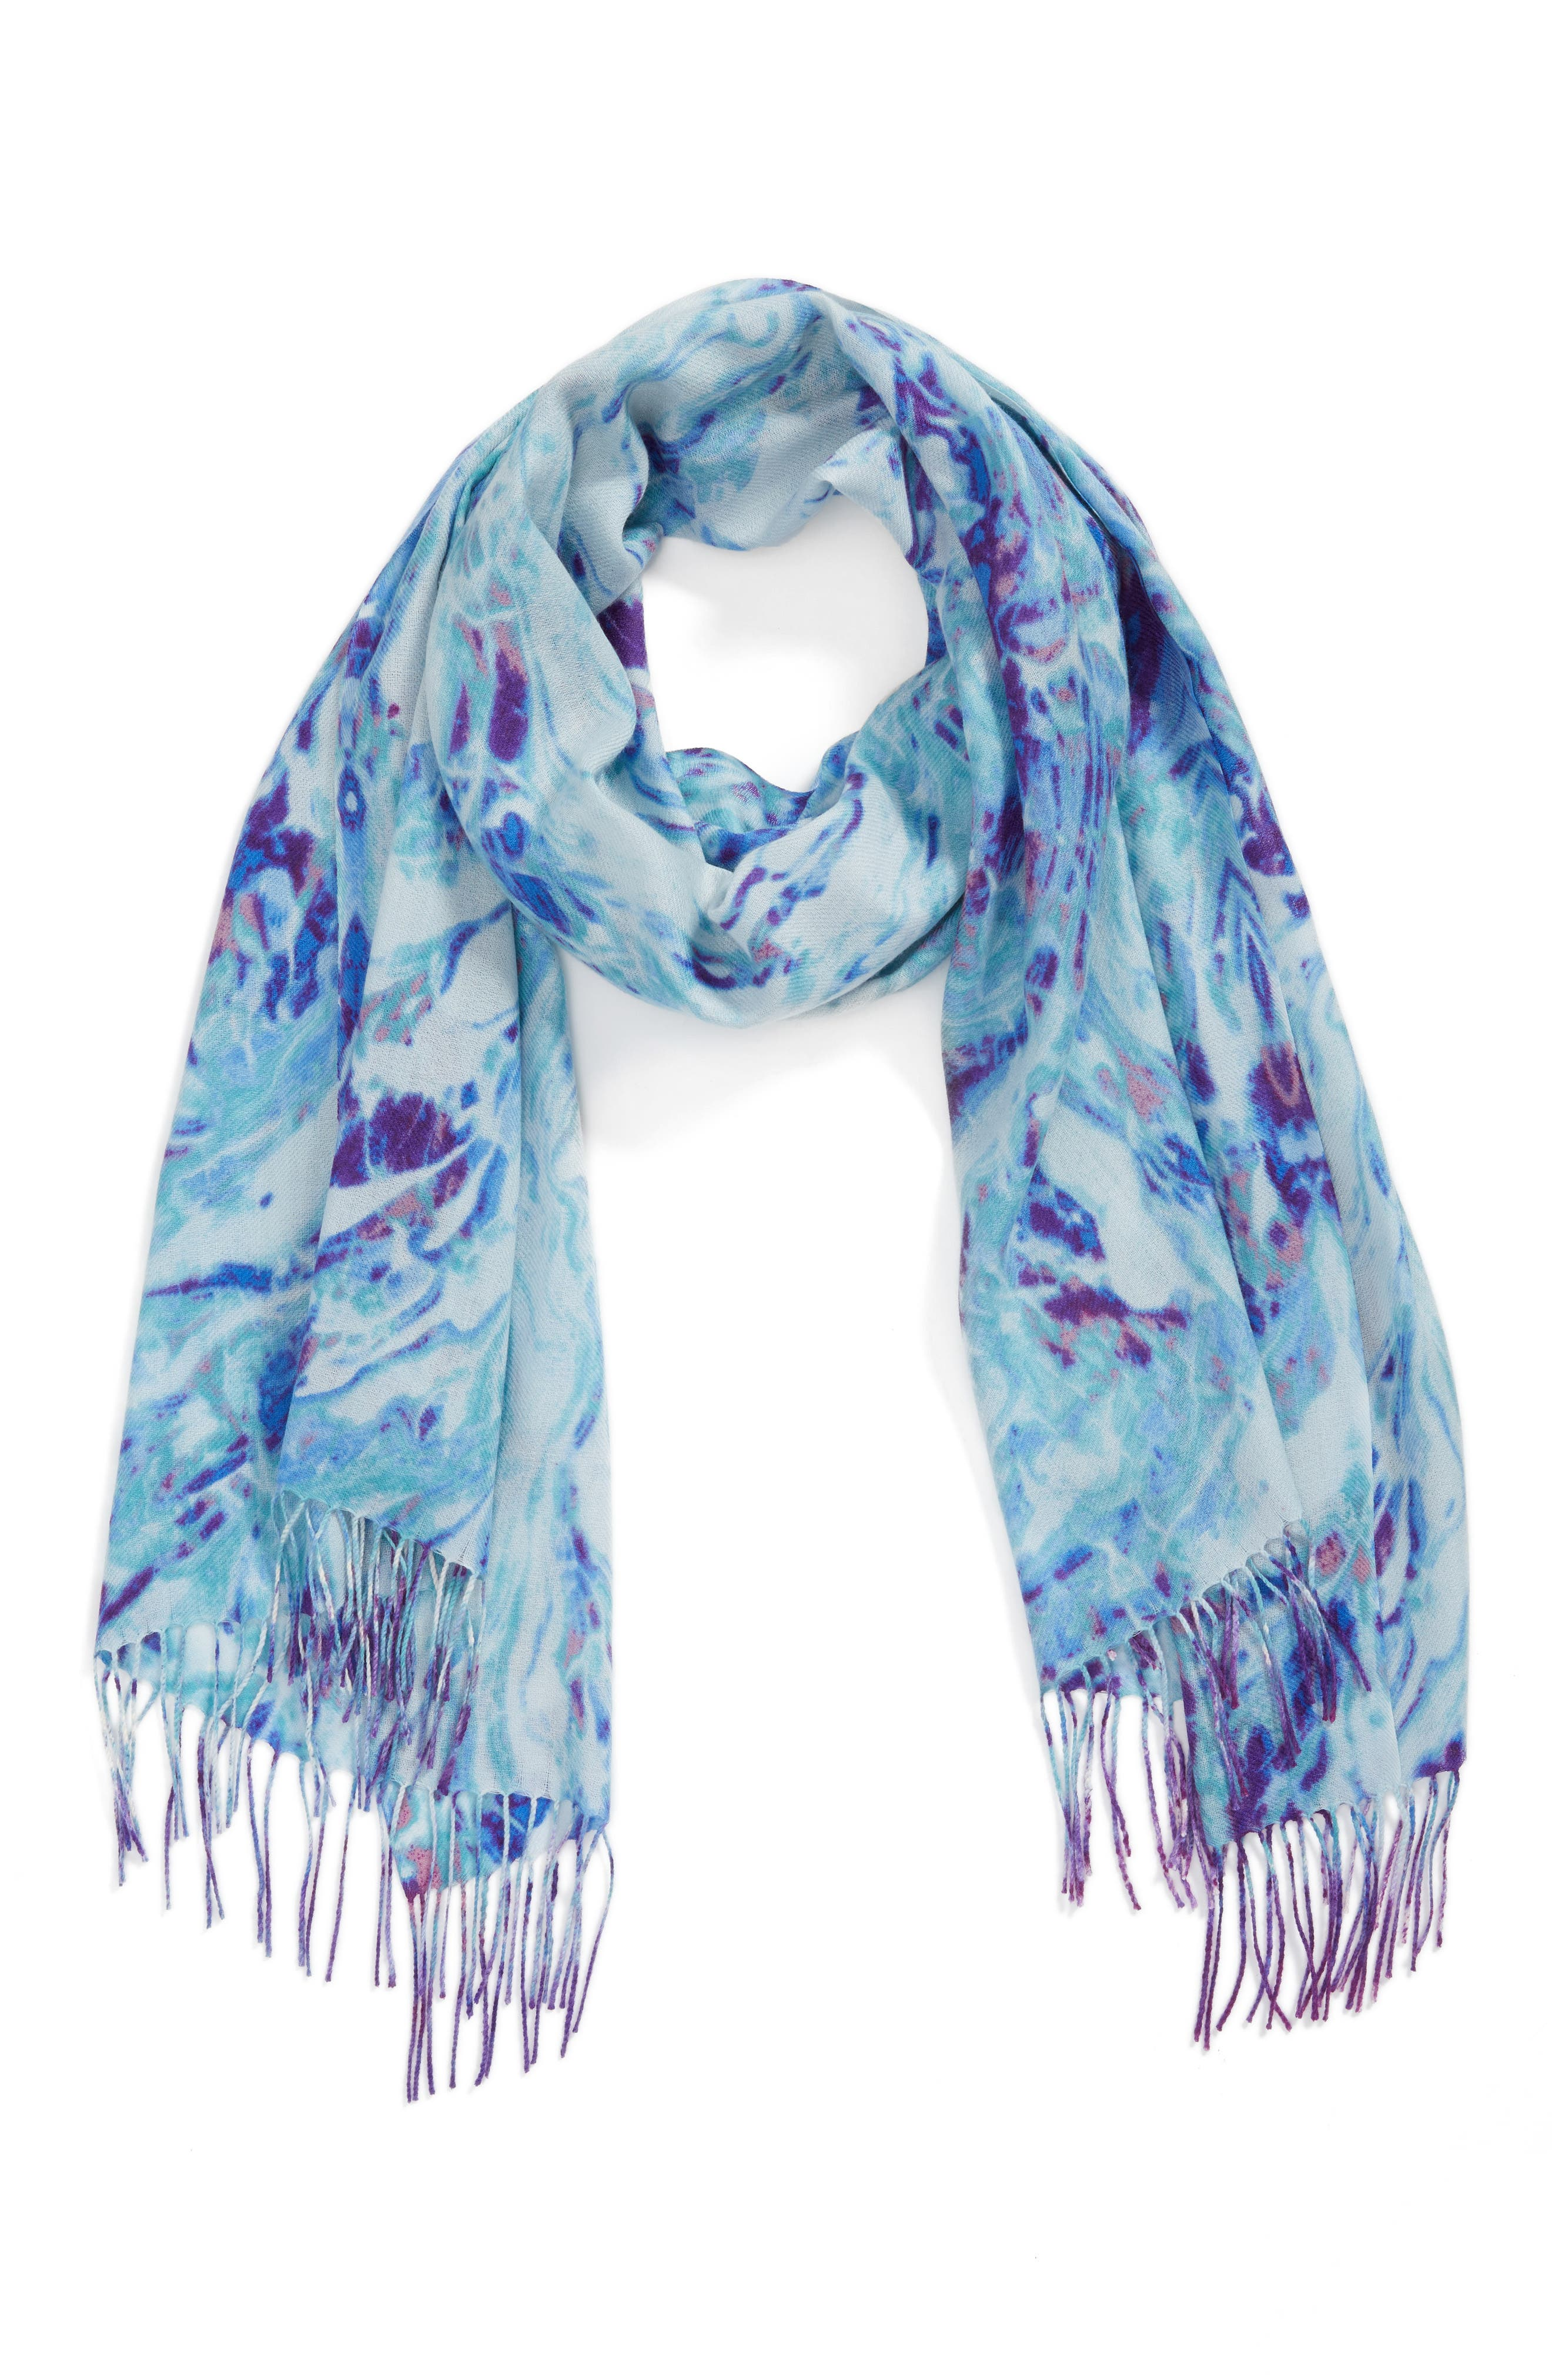 Marble Tissue Wool & Cashmere Scarf,                             Alternate thumbnail 6, color,